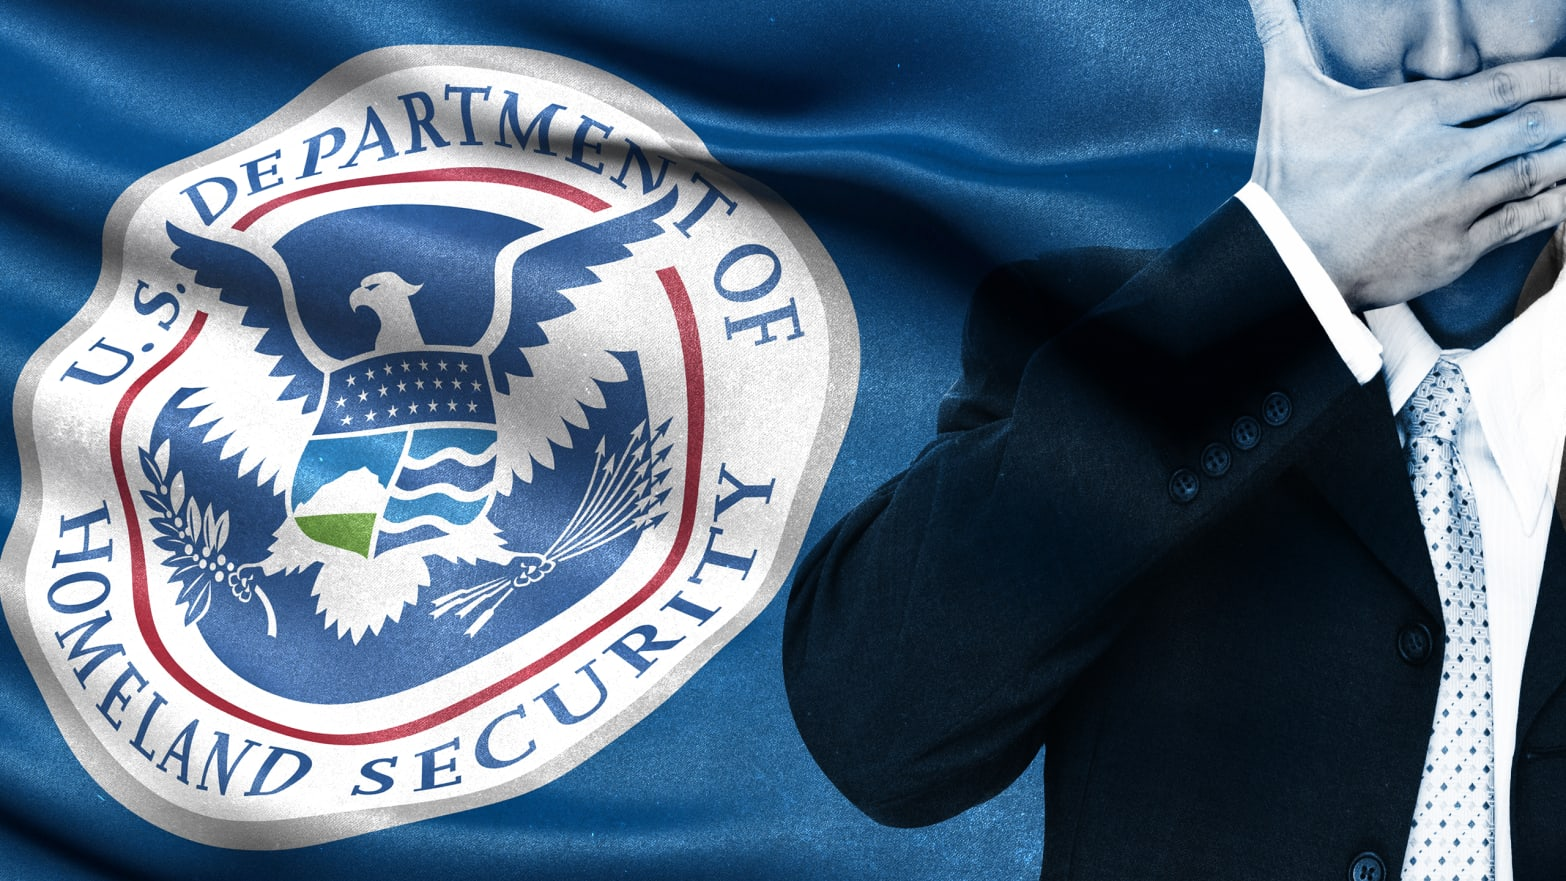 'Homeland Security' Ignores White Terror, DHS Veterans Say